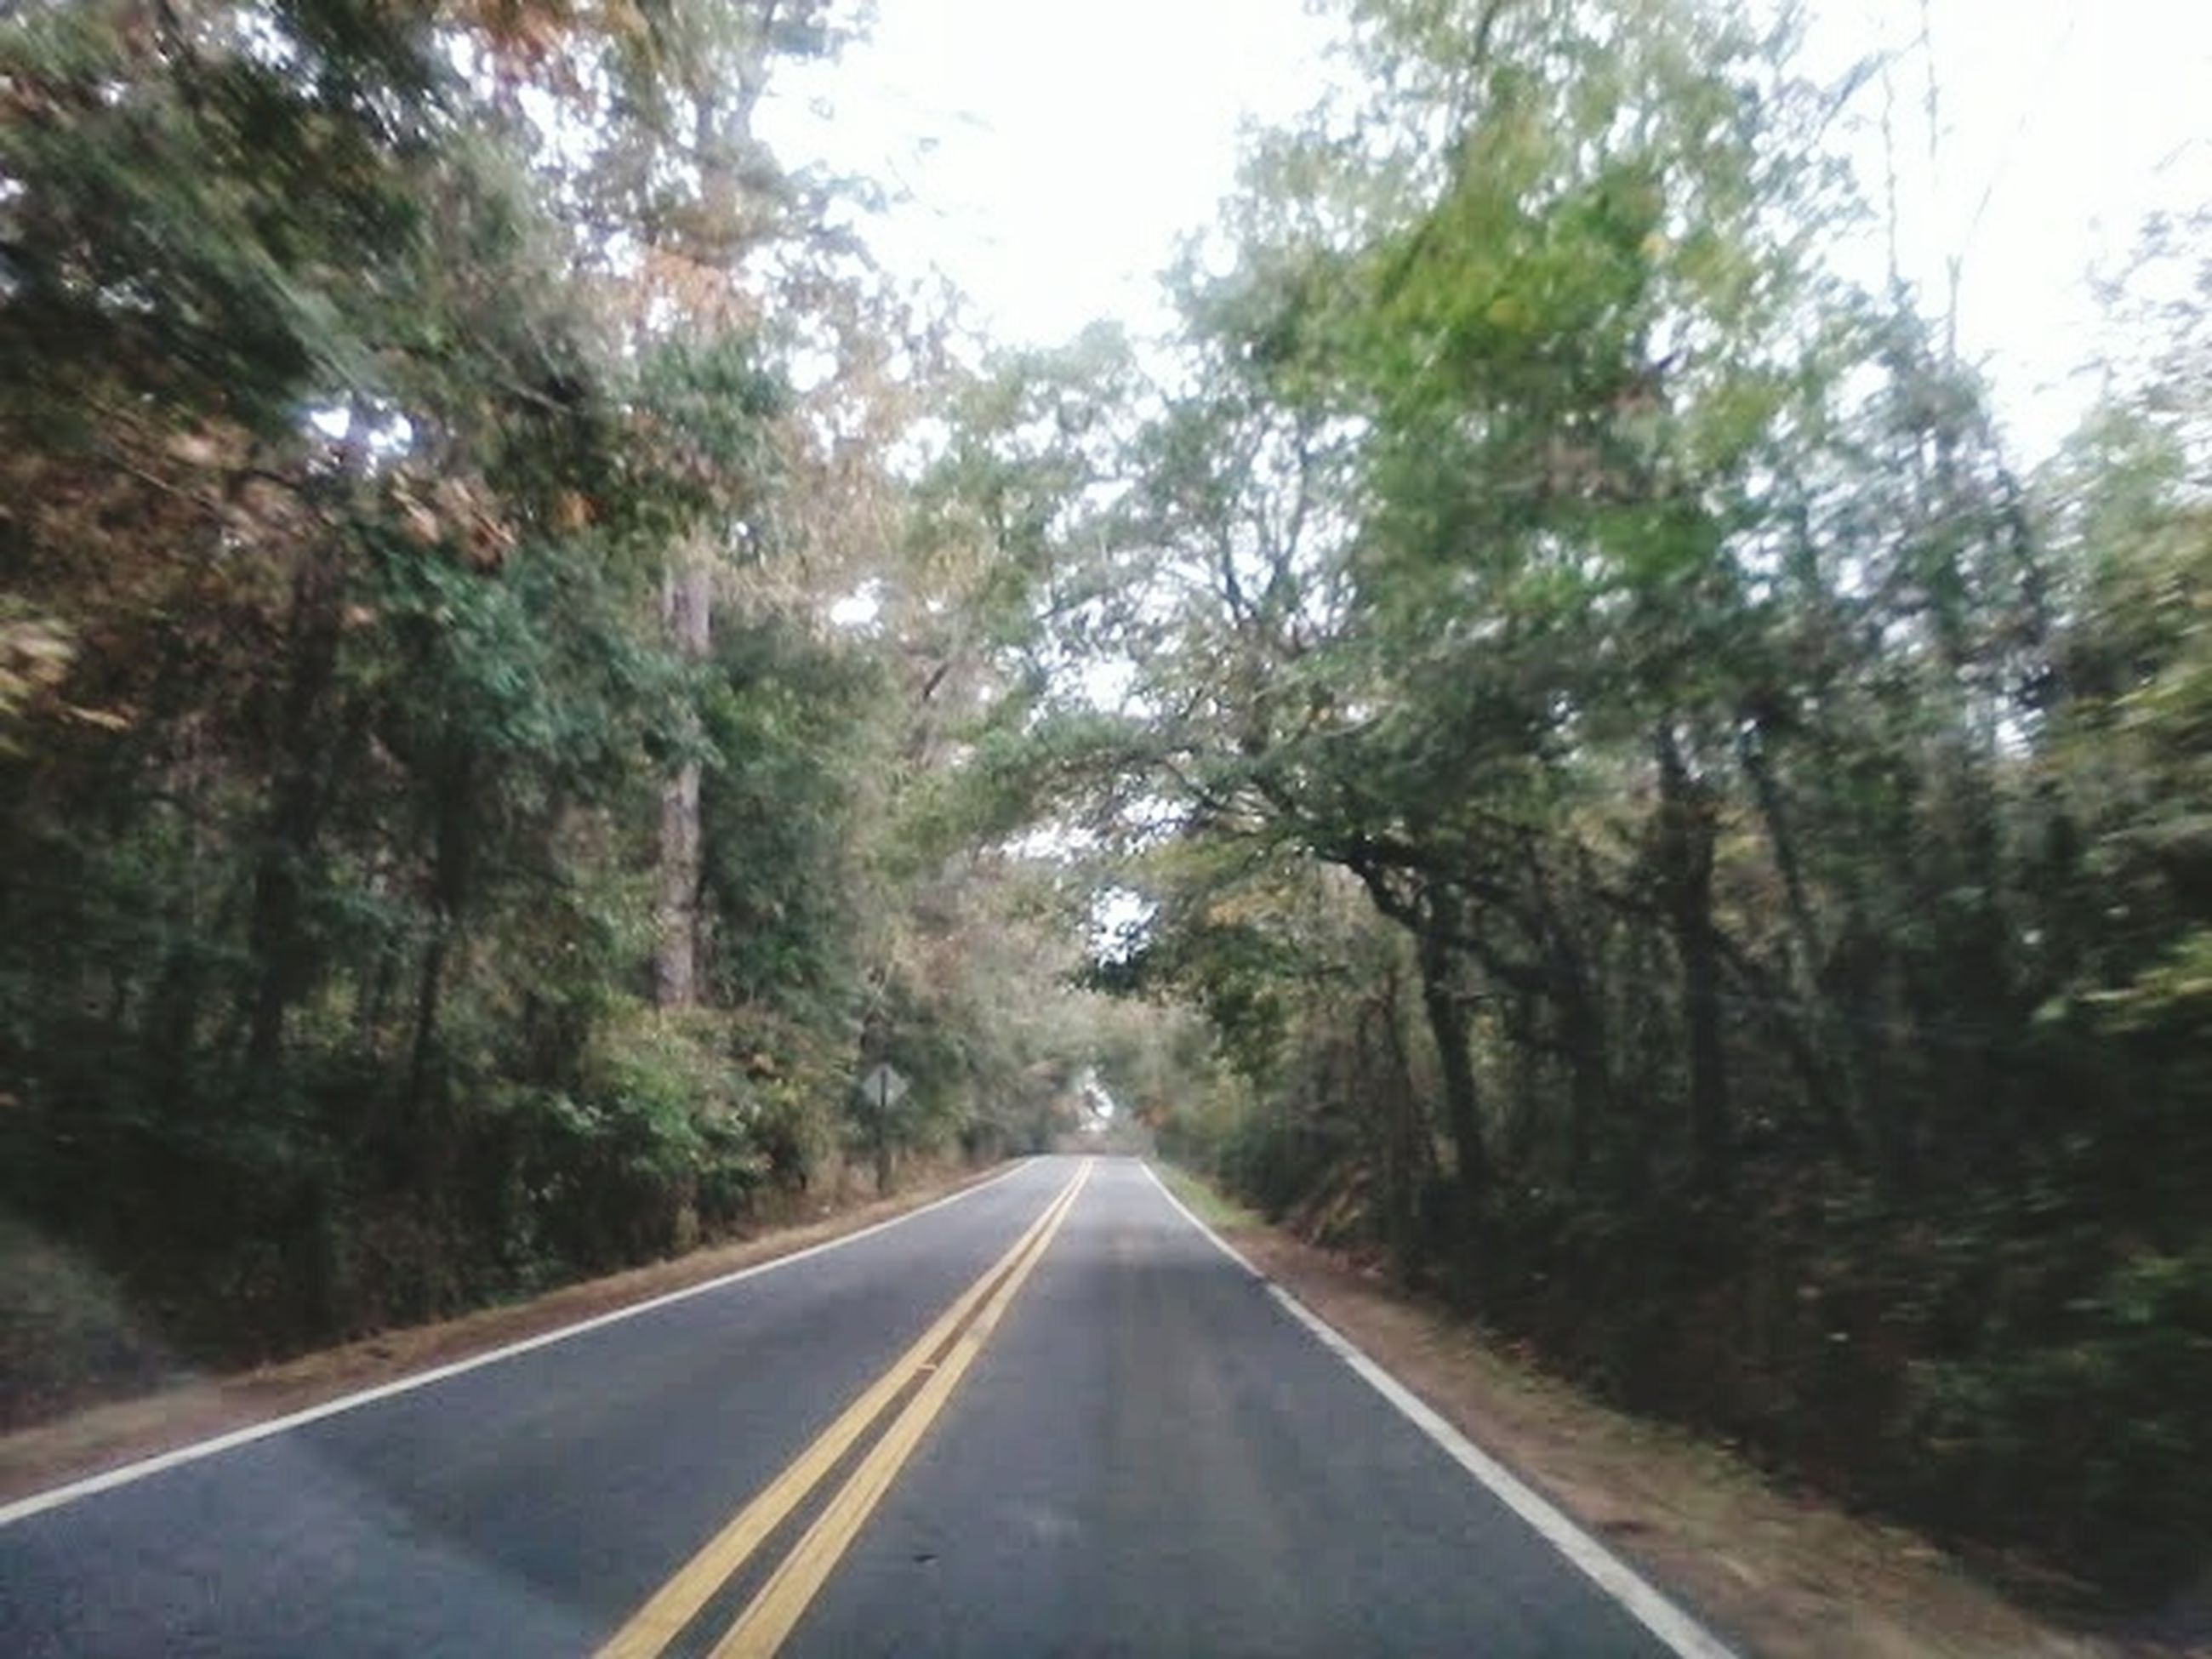 the way forward, tree, transportation, road, diminishing perspective, vanishing point, road marking, forest, country road, nature, growth, tranquility, empty road, day, asphalt, no people, outdoors, sky, long, street